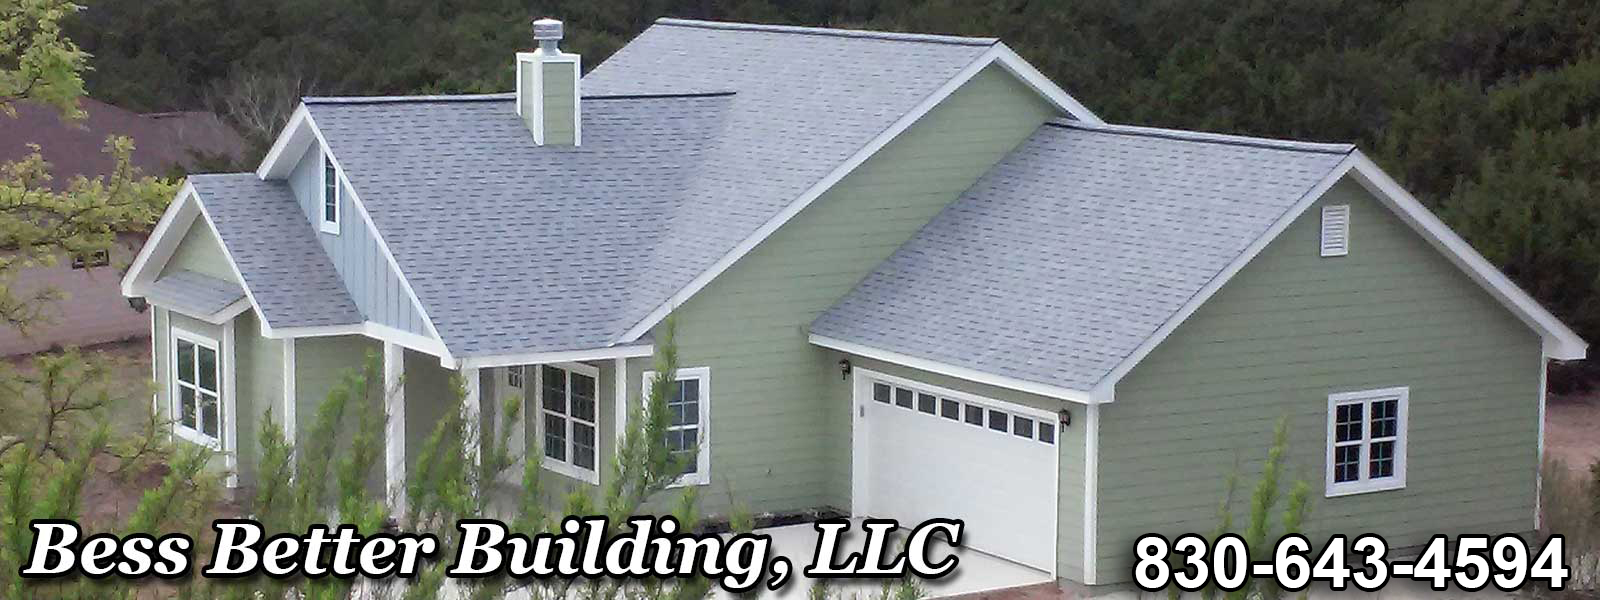 Canyon Lake custom Home Builders New House General Contractor Building Company